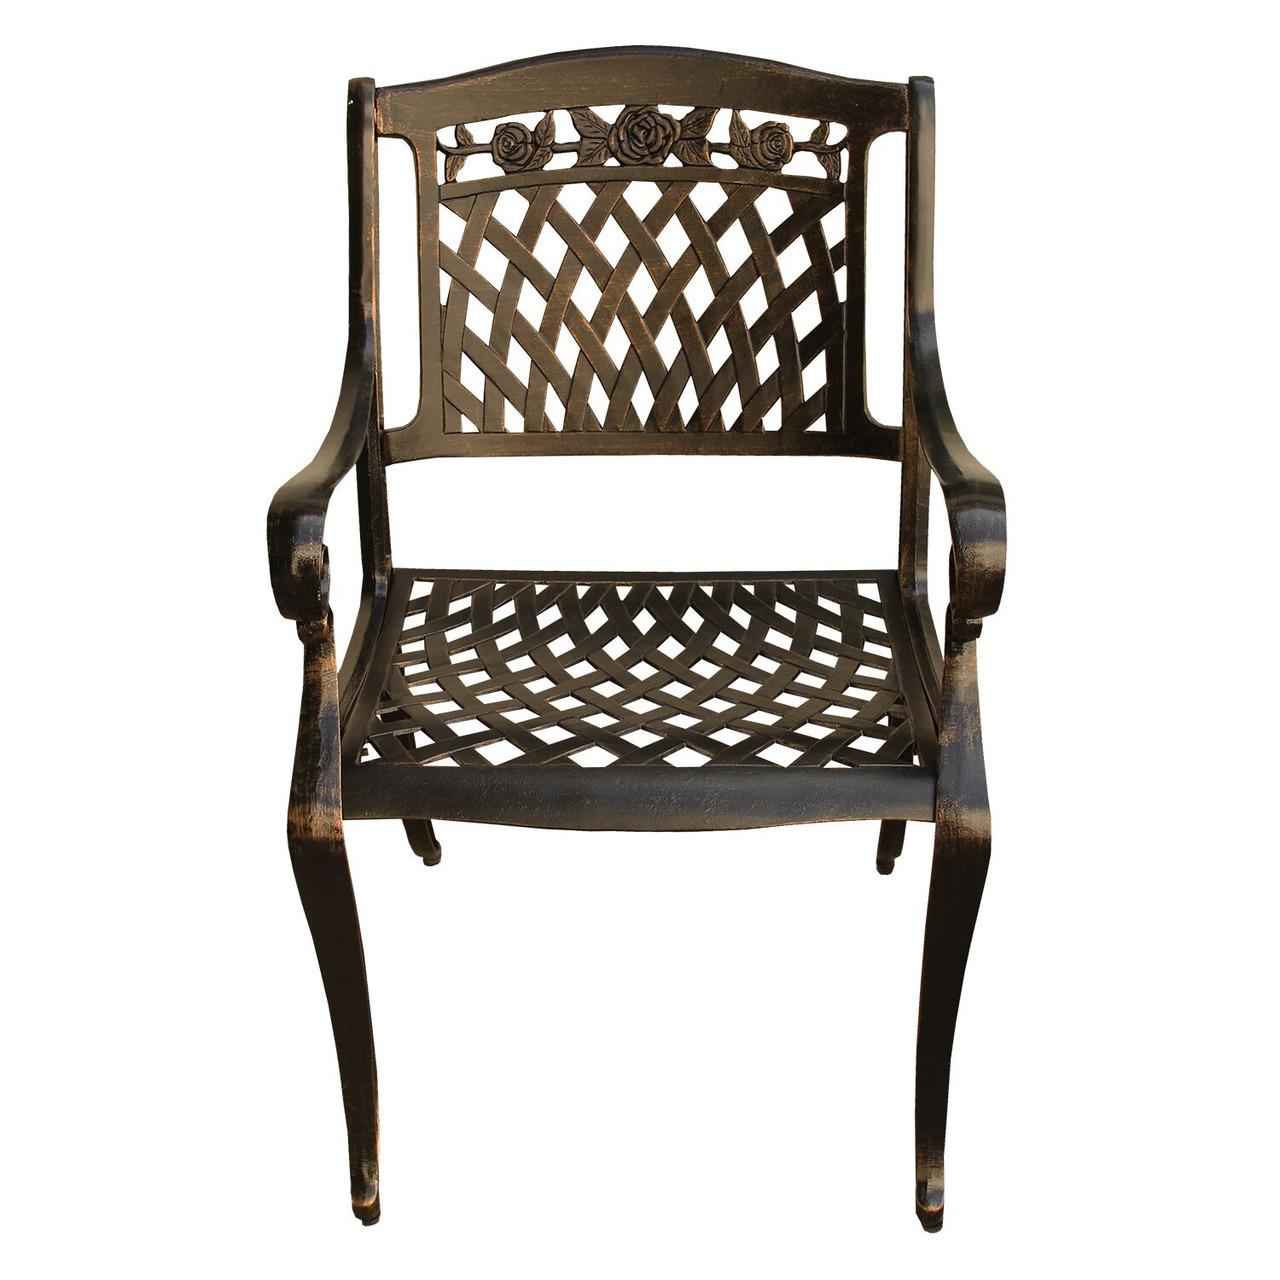 Rose Ornate Traditional Outdoor Mesh Lattice Aluminum Bronze Dining Chair    32739746